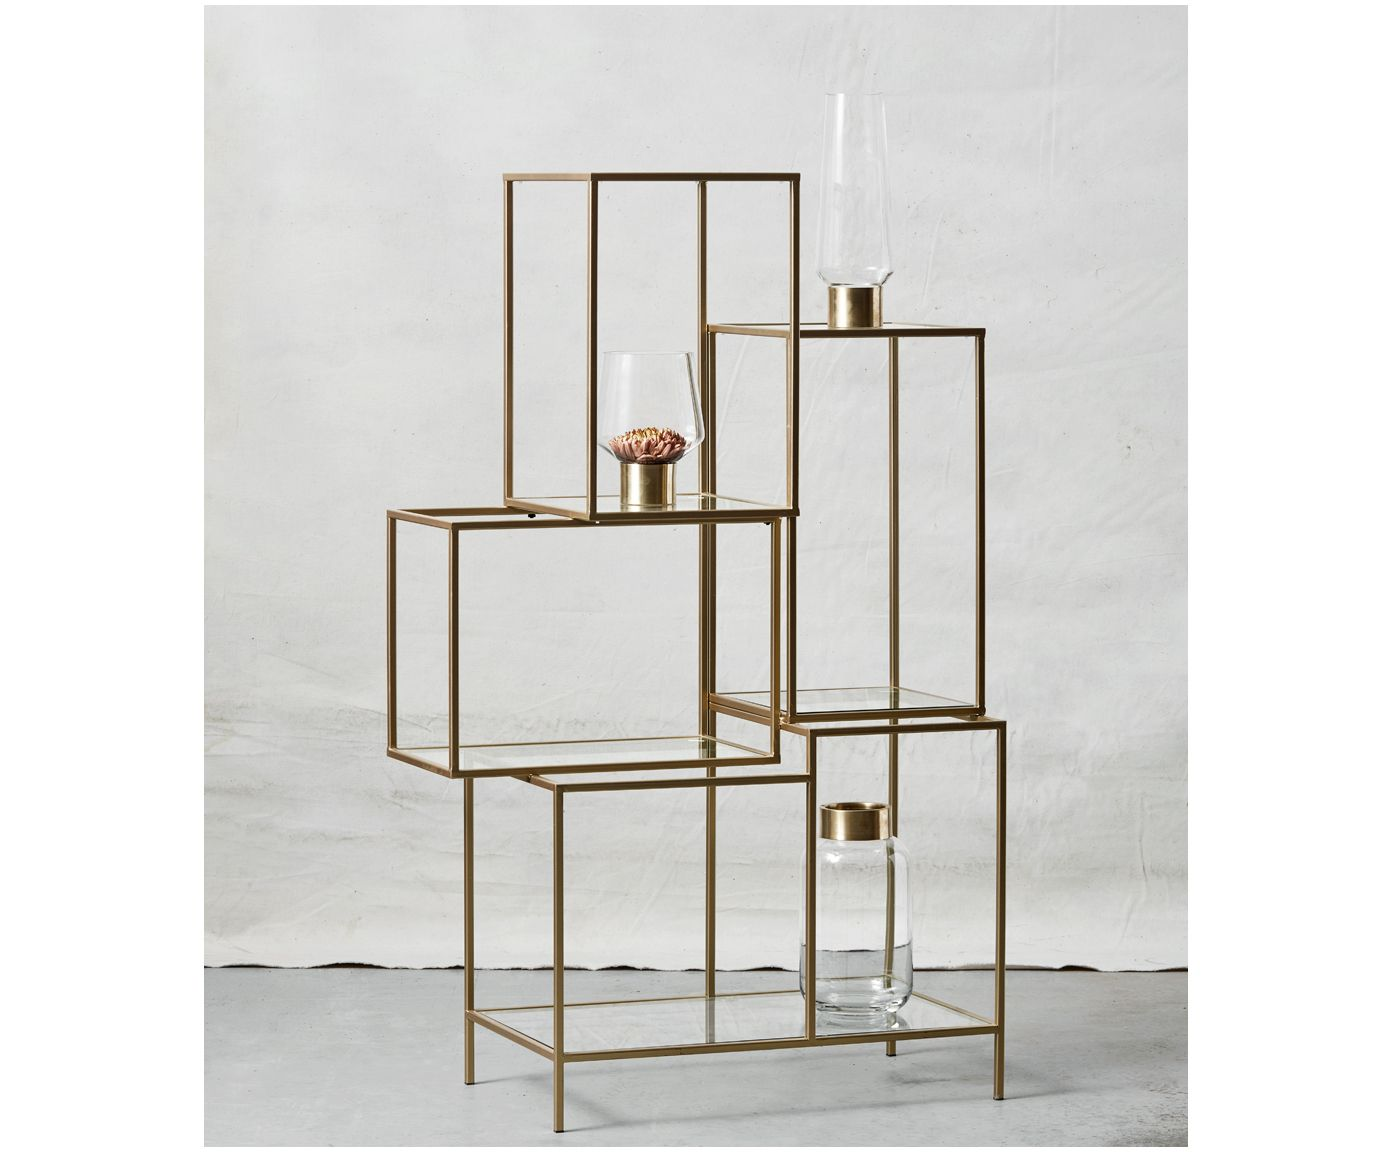 Bunte Wandregale Regal Rack Home Brass Shelving Shelving Racks Und Glass Shelves